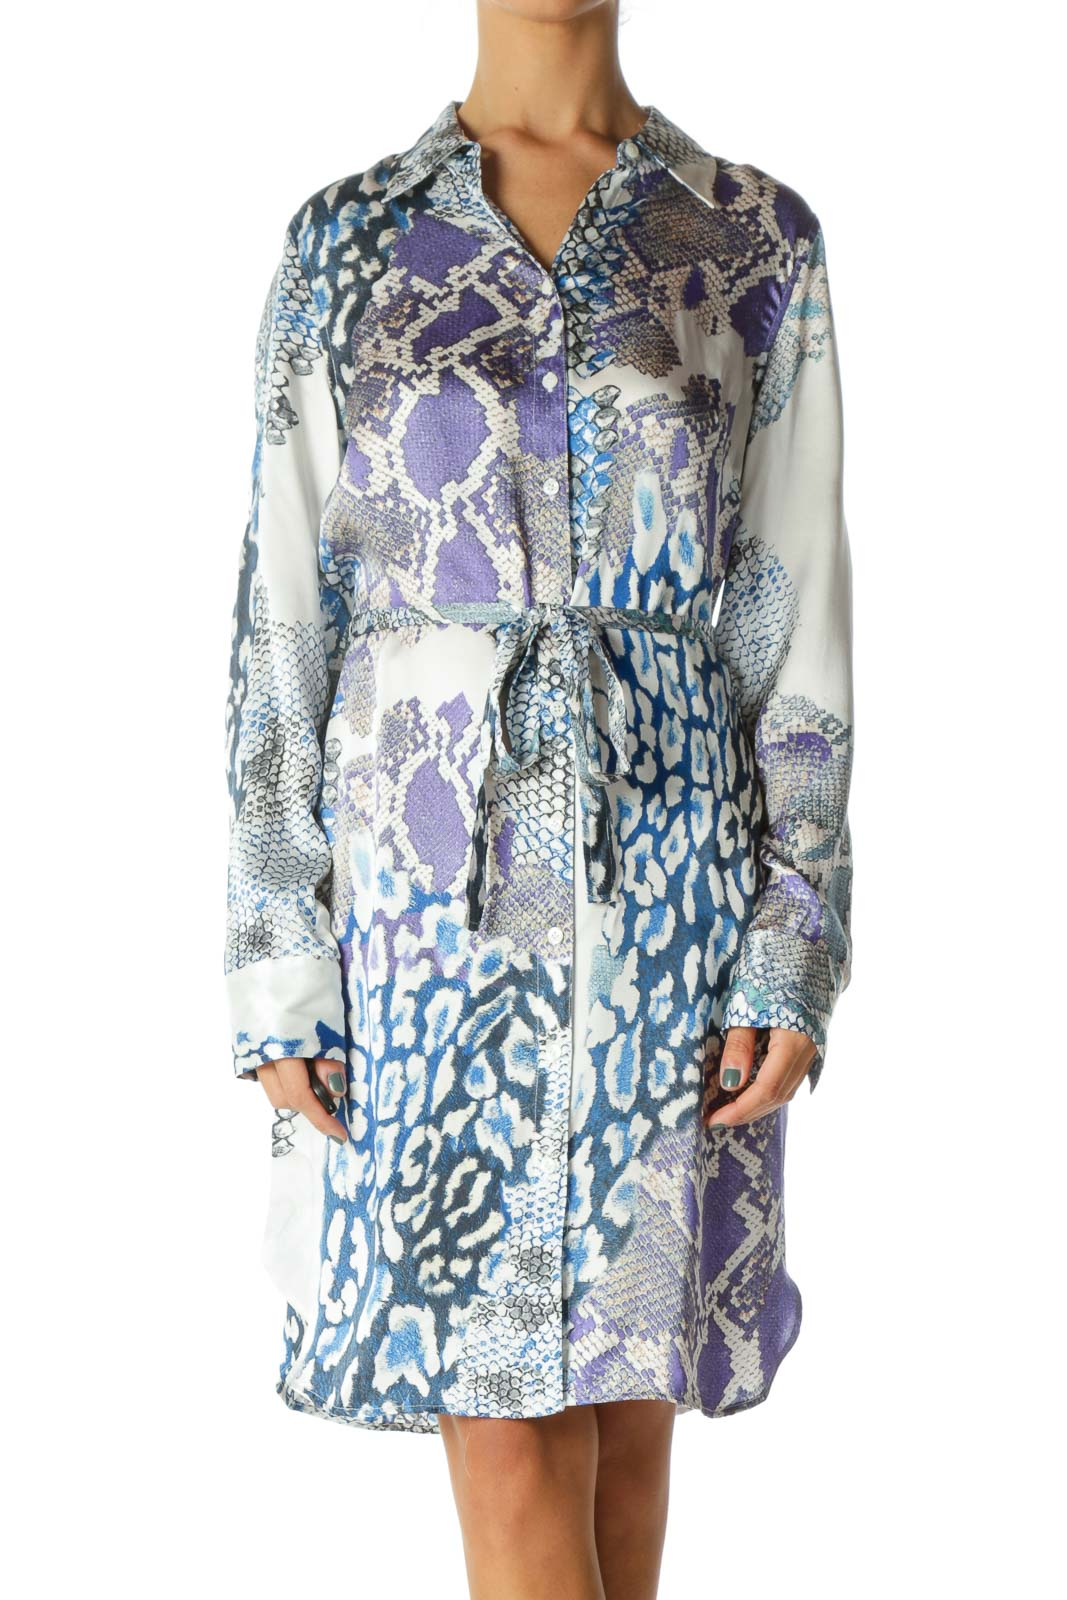 Blue White & Green Snake Print 100% Silk Long-Sleeve Button-Down Waist-Tie Dress